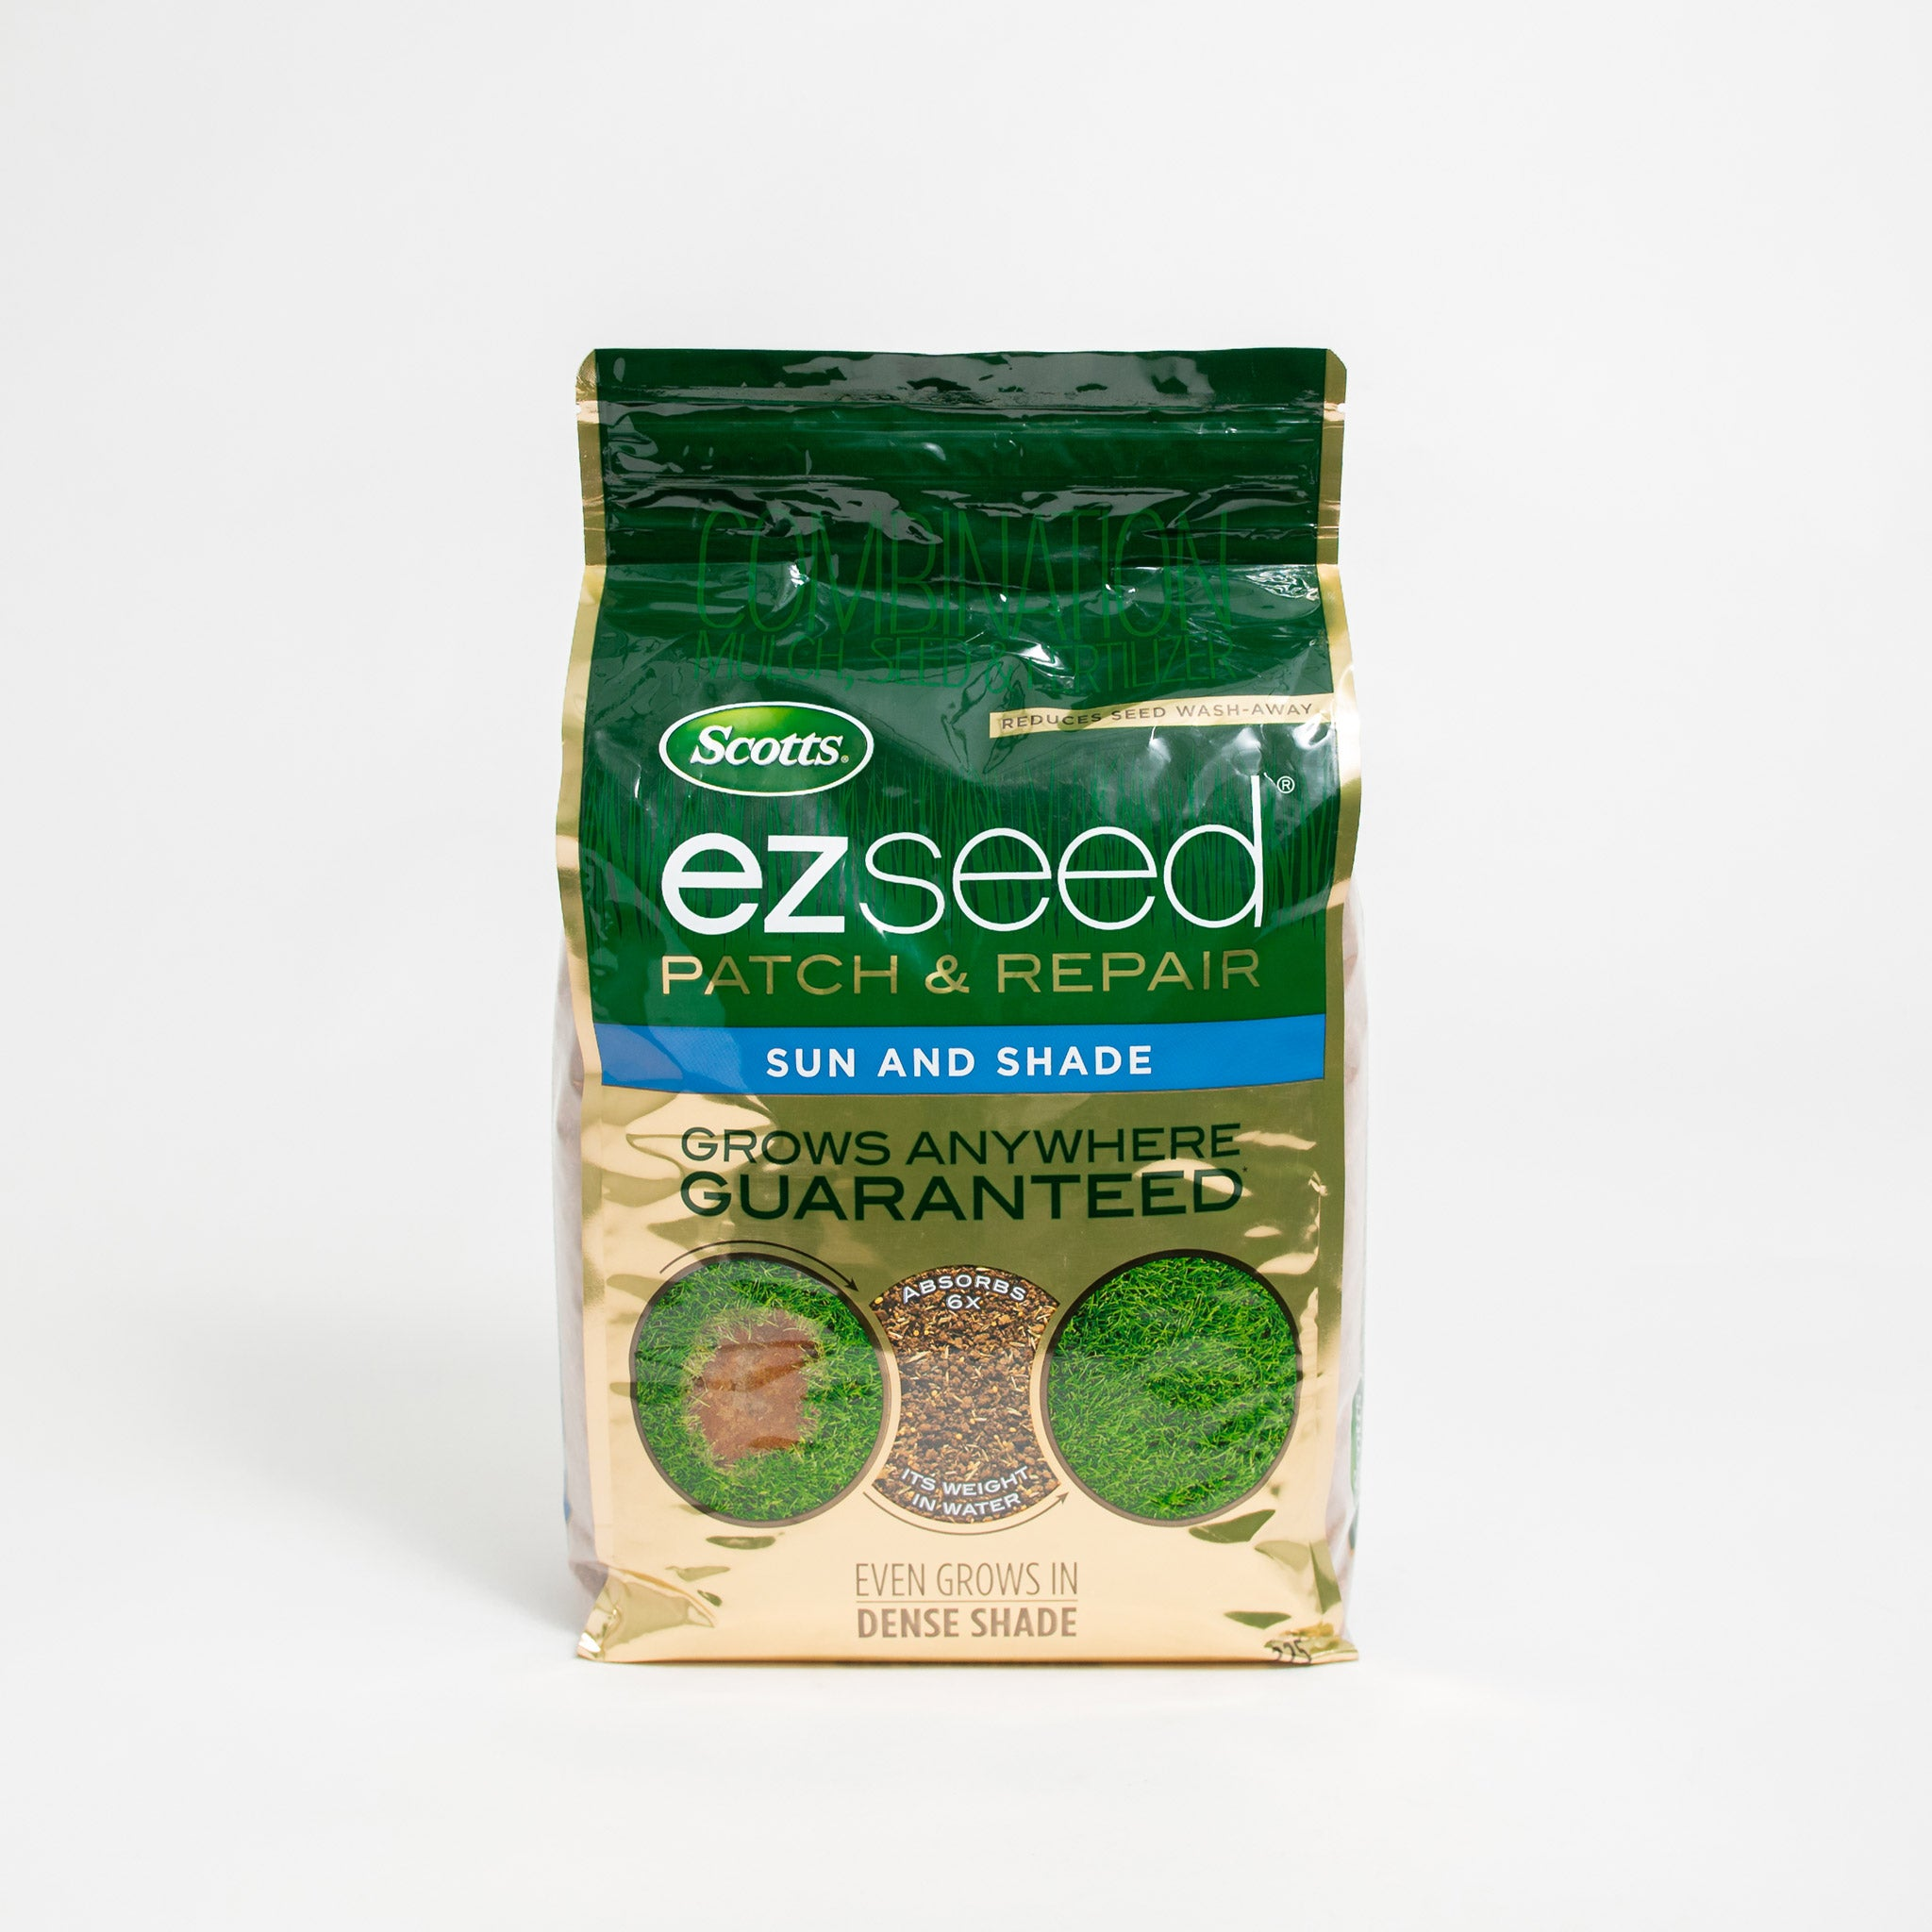 EZ Seed® Patch & Repair Sun and Shade